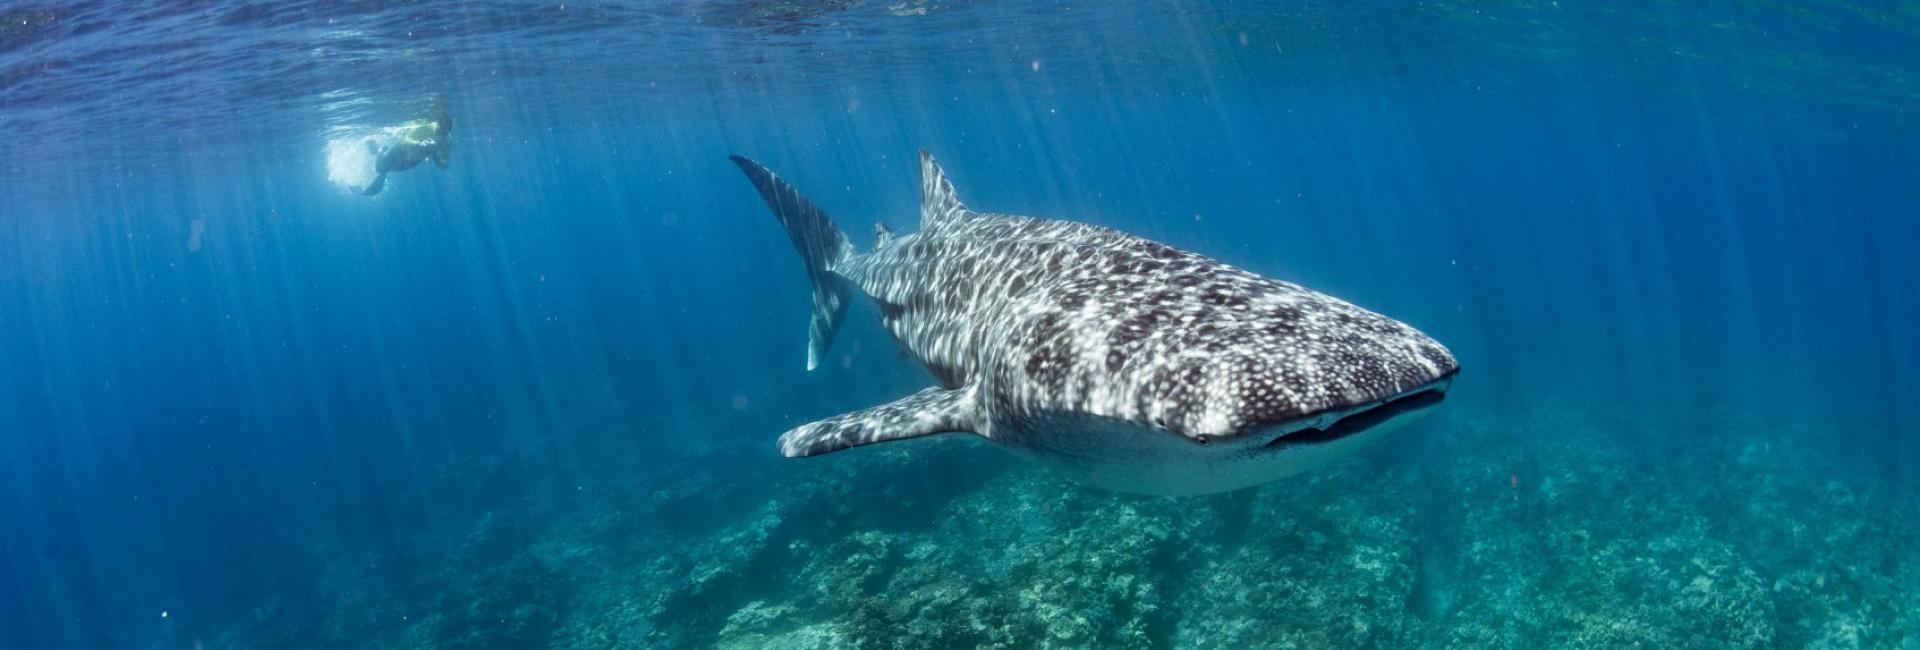 Swim with whale sharks on the World Heritage Listed Ningaloo Reef, Australia's Coral Coast, Western Australia